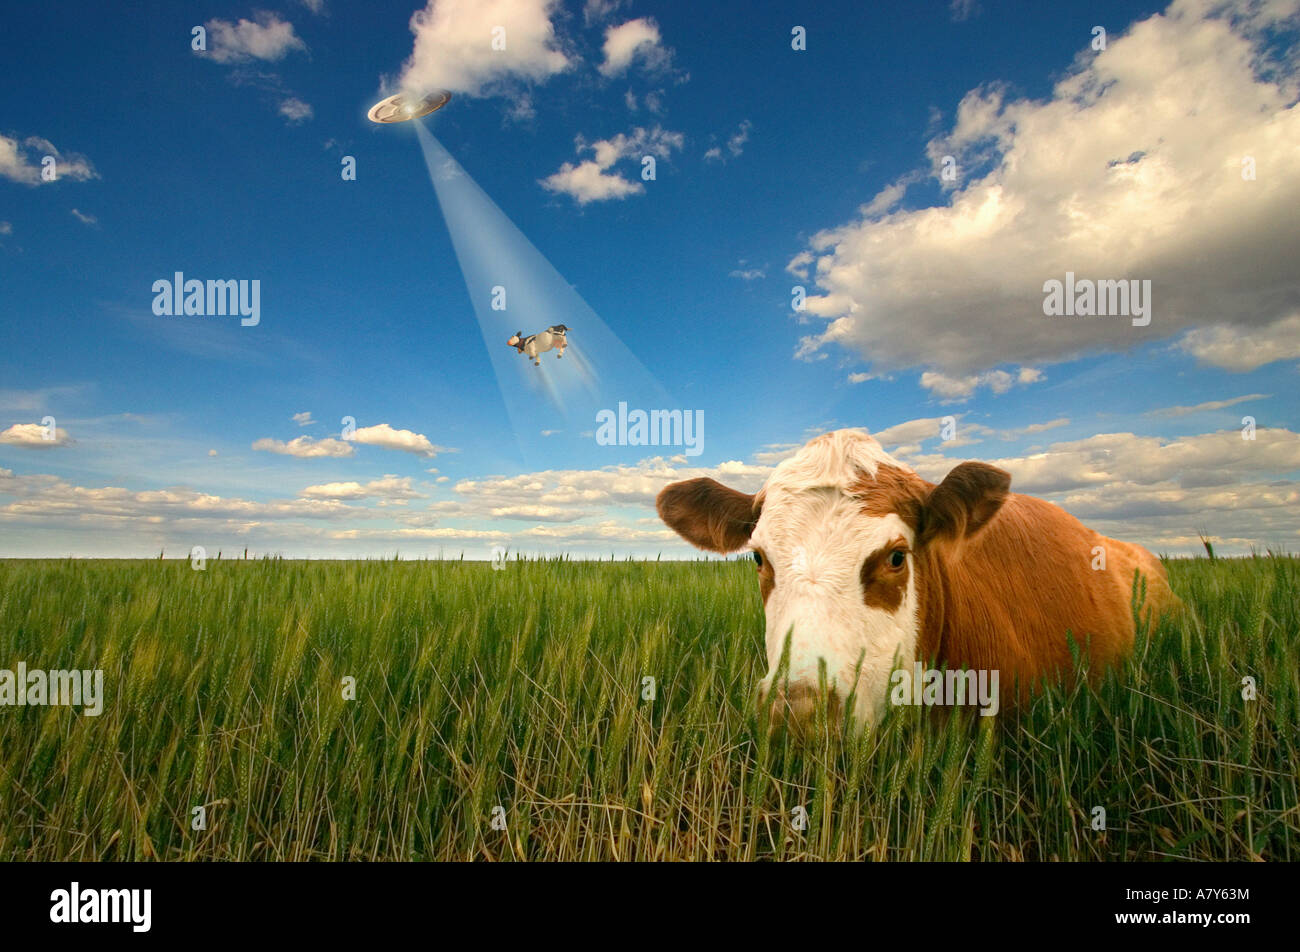 Cow abduction - Stock Image